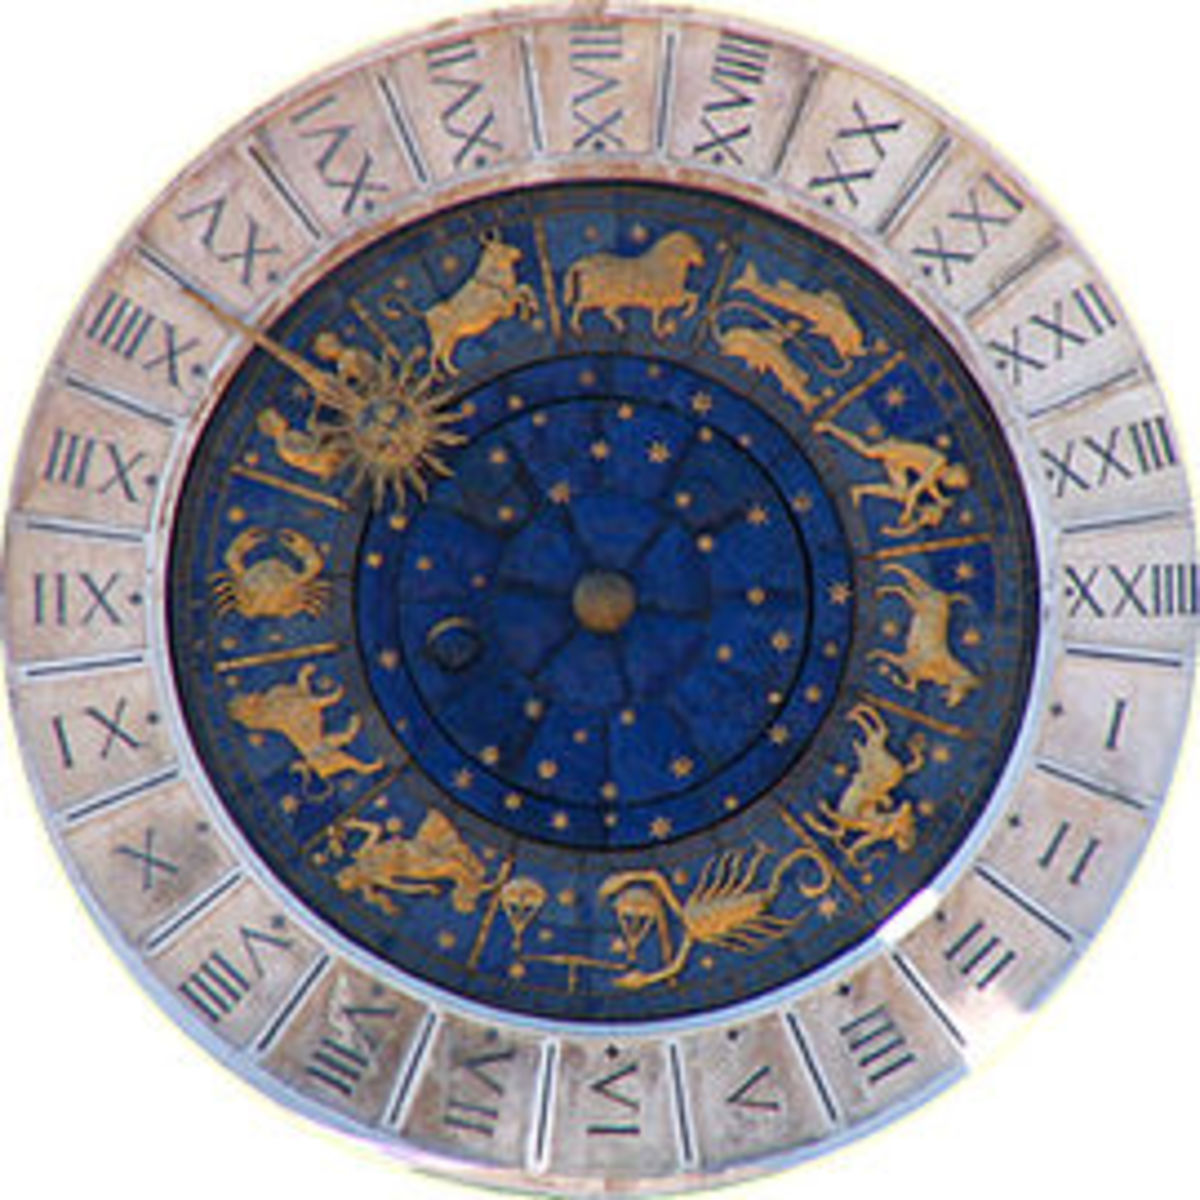 writings ancient chaldean astronomy saturn - photo #7